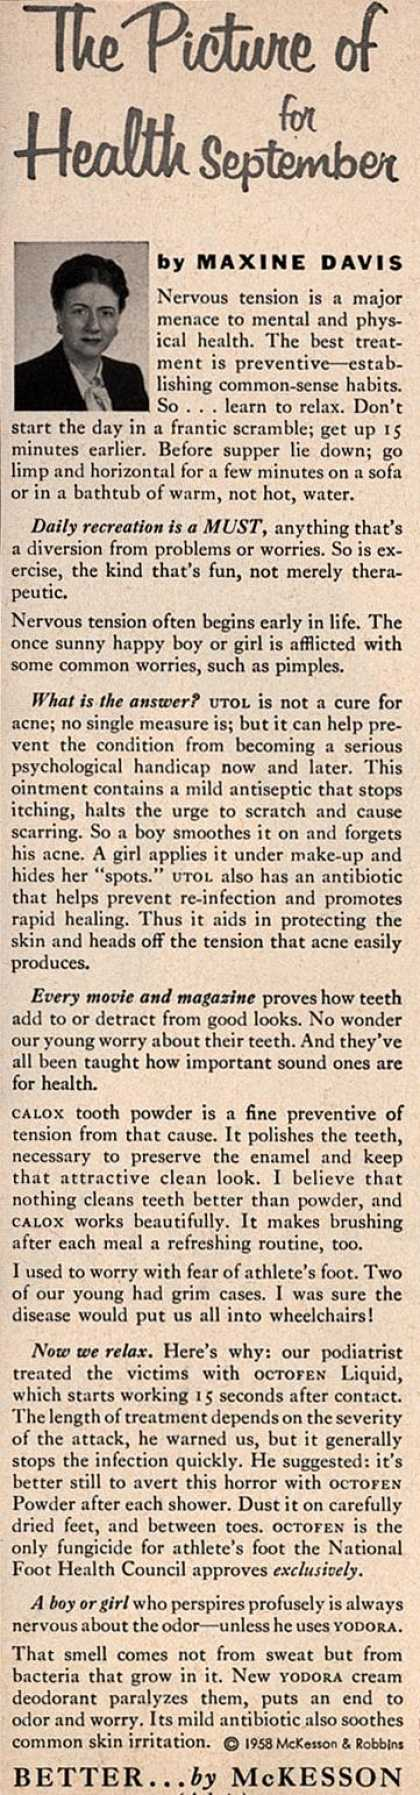 McKesson & Robbin's Maxine Davis advice column – The Picture of Health for September (1958)